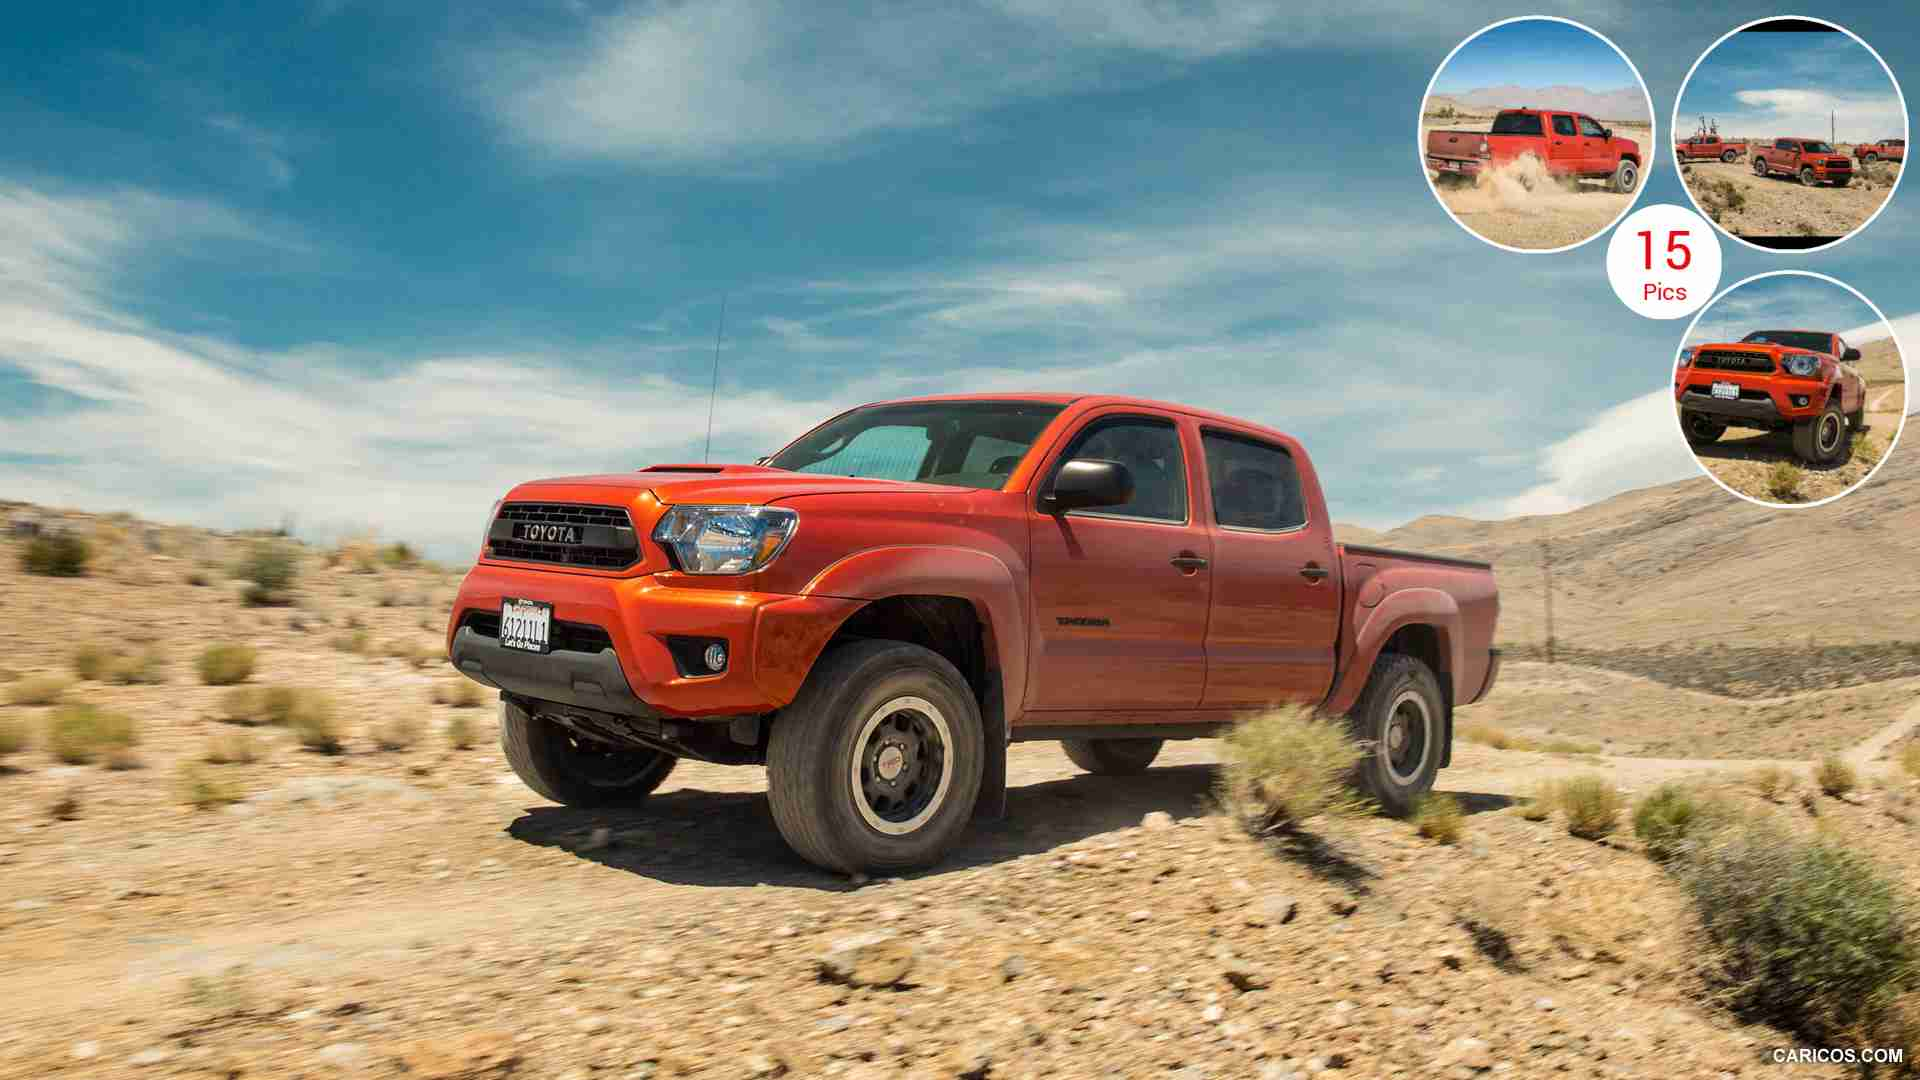 2015 Toyota Tacoma TRD Pro Series | Download Wallpaper | Pinterest ...